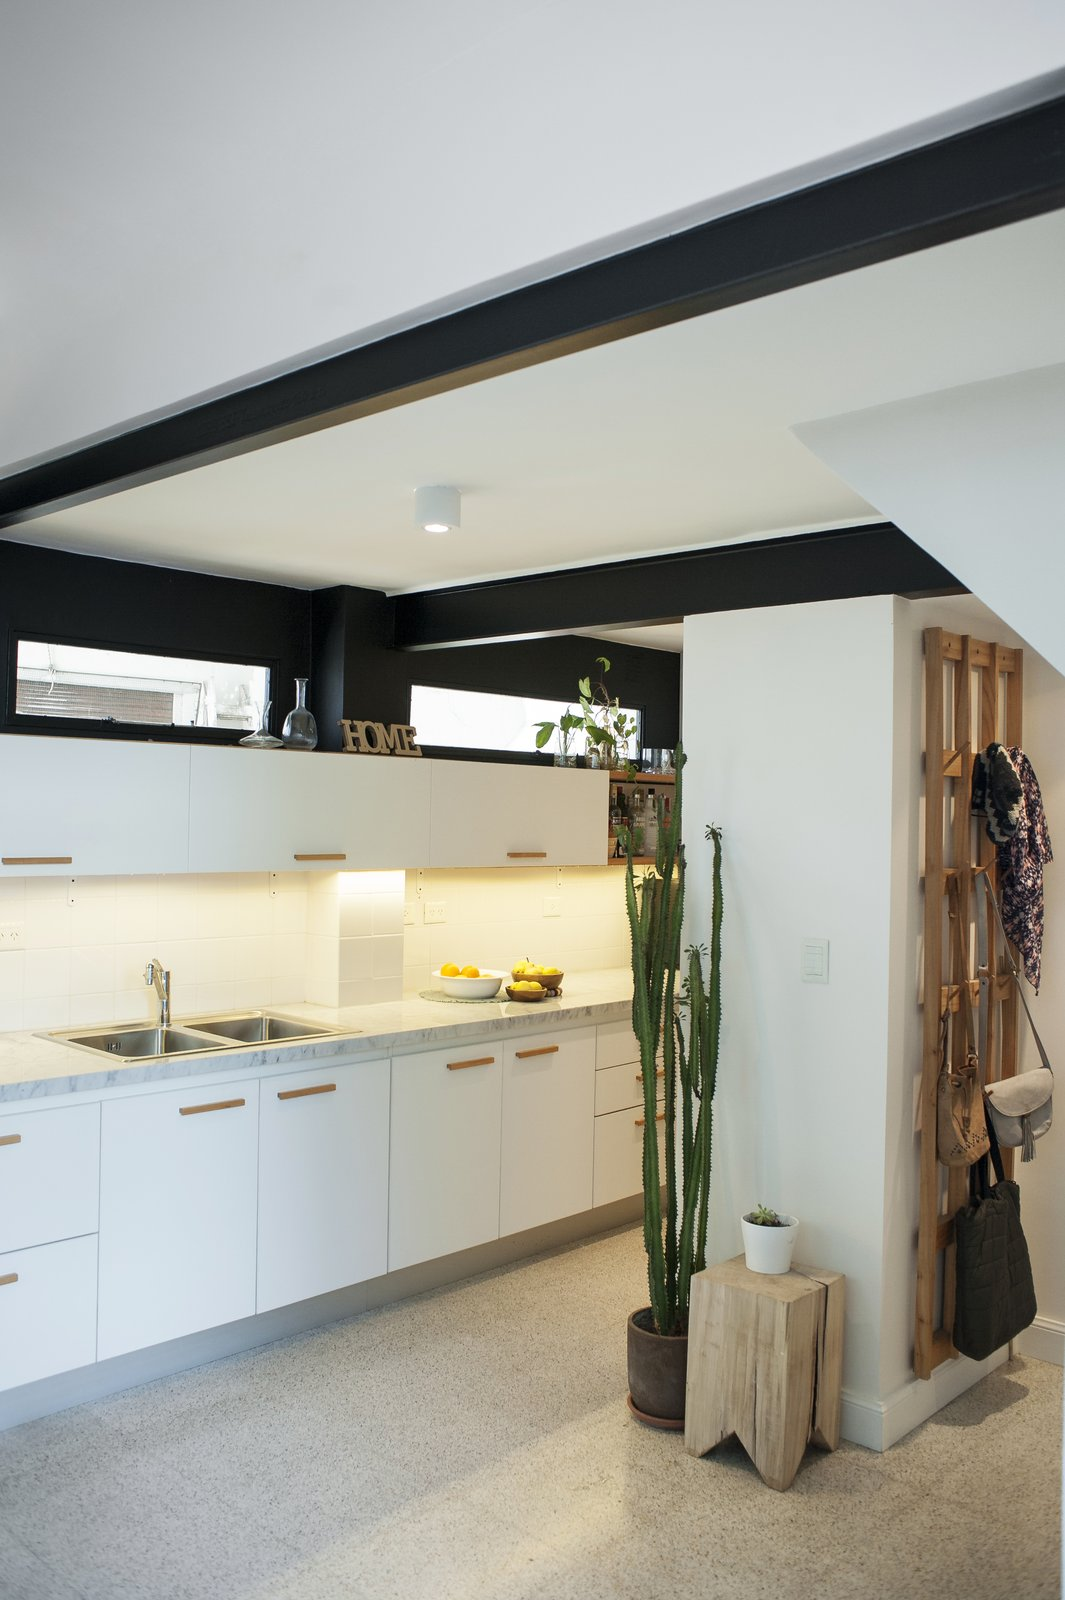 The original beams and the wall above the cupboard have been painted in black  Artigas by melisa